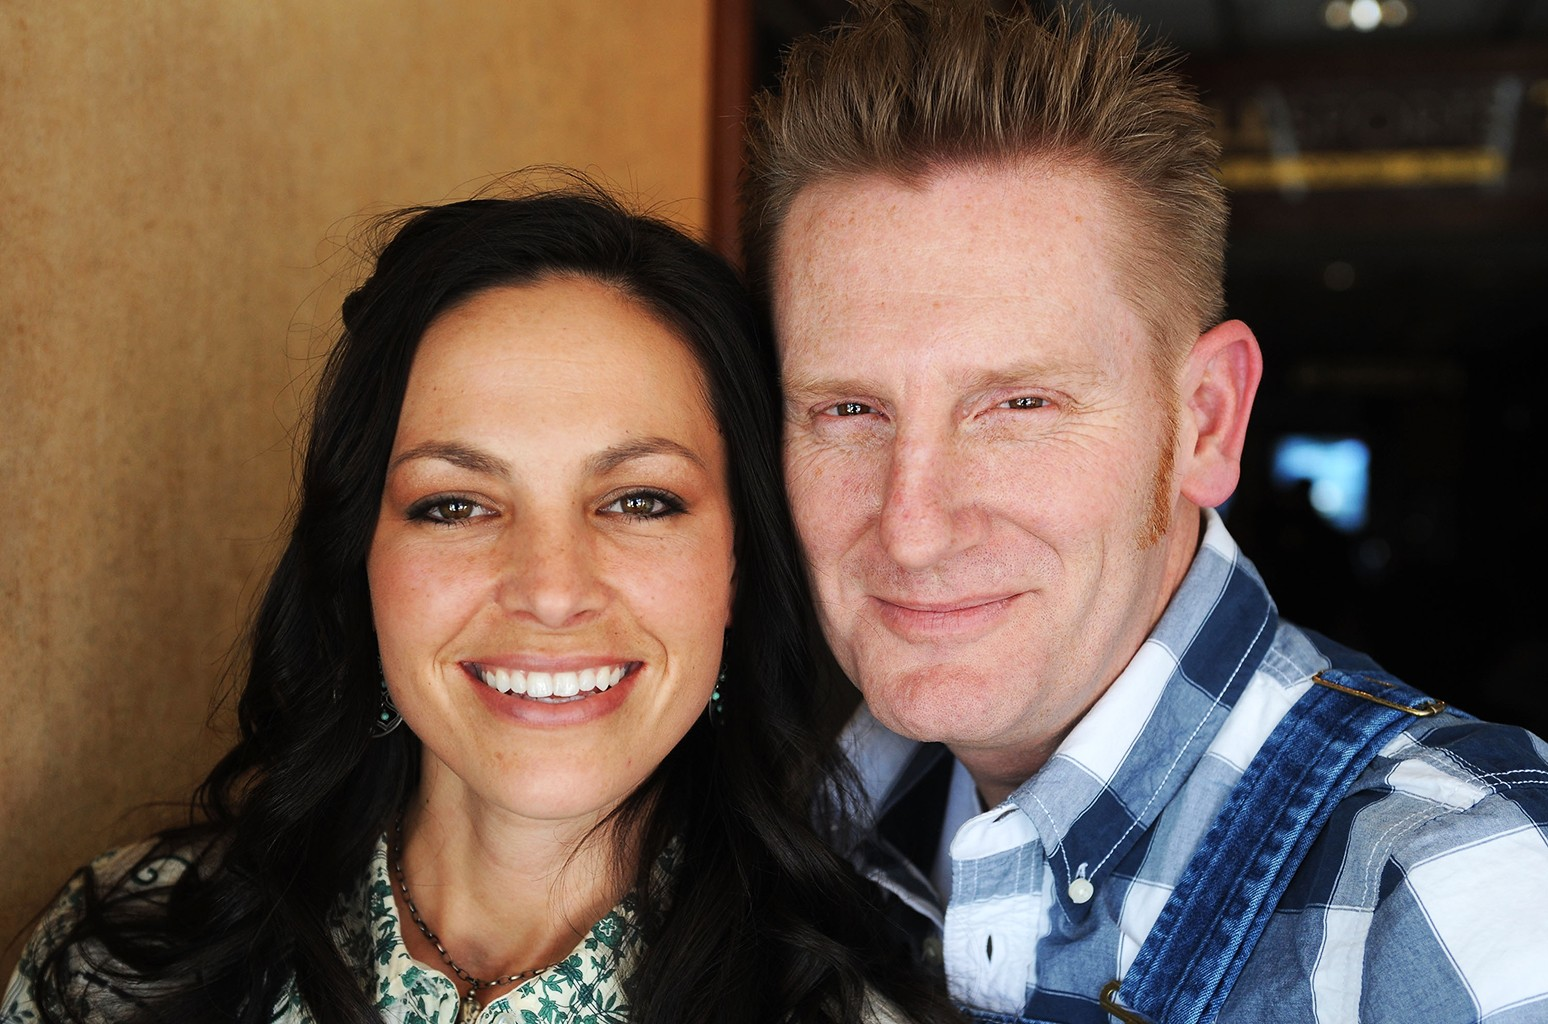 Joey Martin and Rory Feek of Joey + Rory at Stanfield Gallery on Jan. 28, 2010 in Park City, Utah.